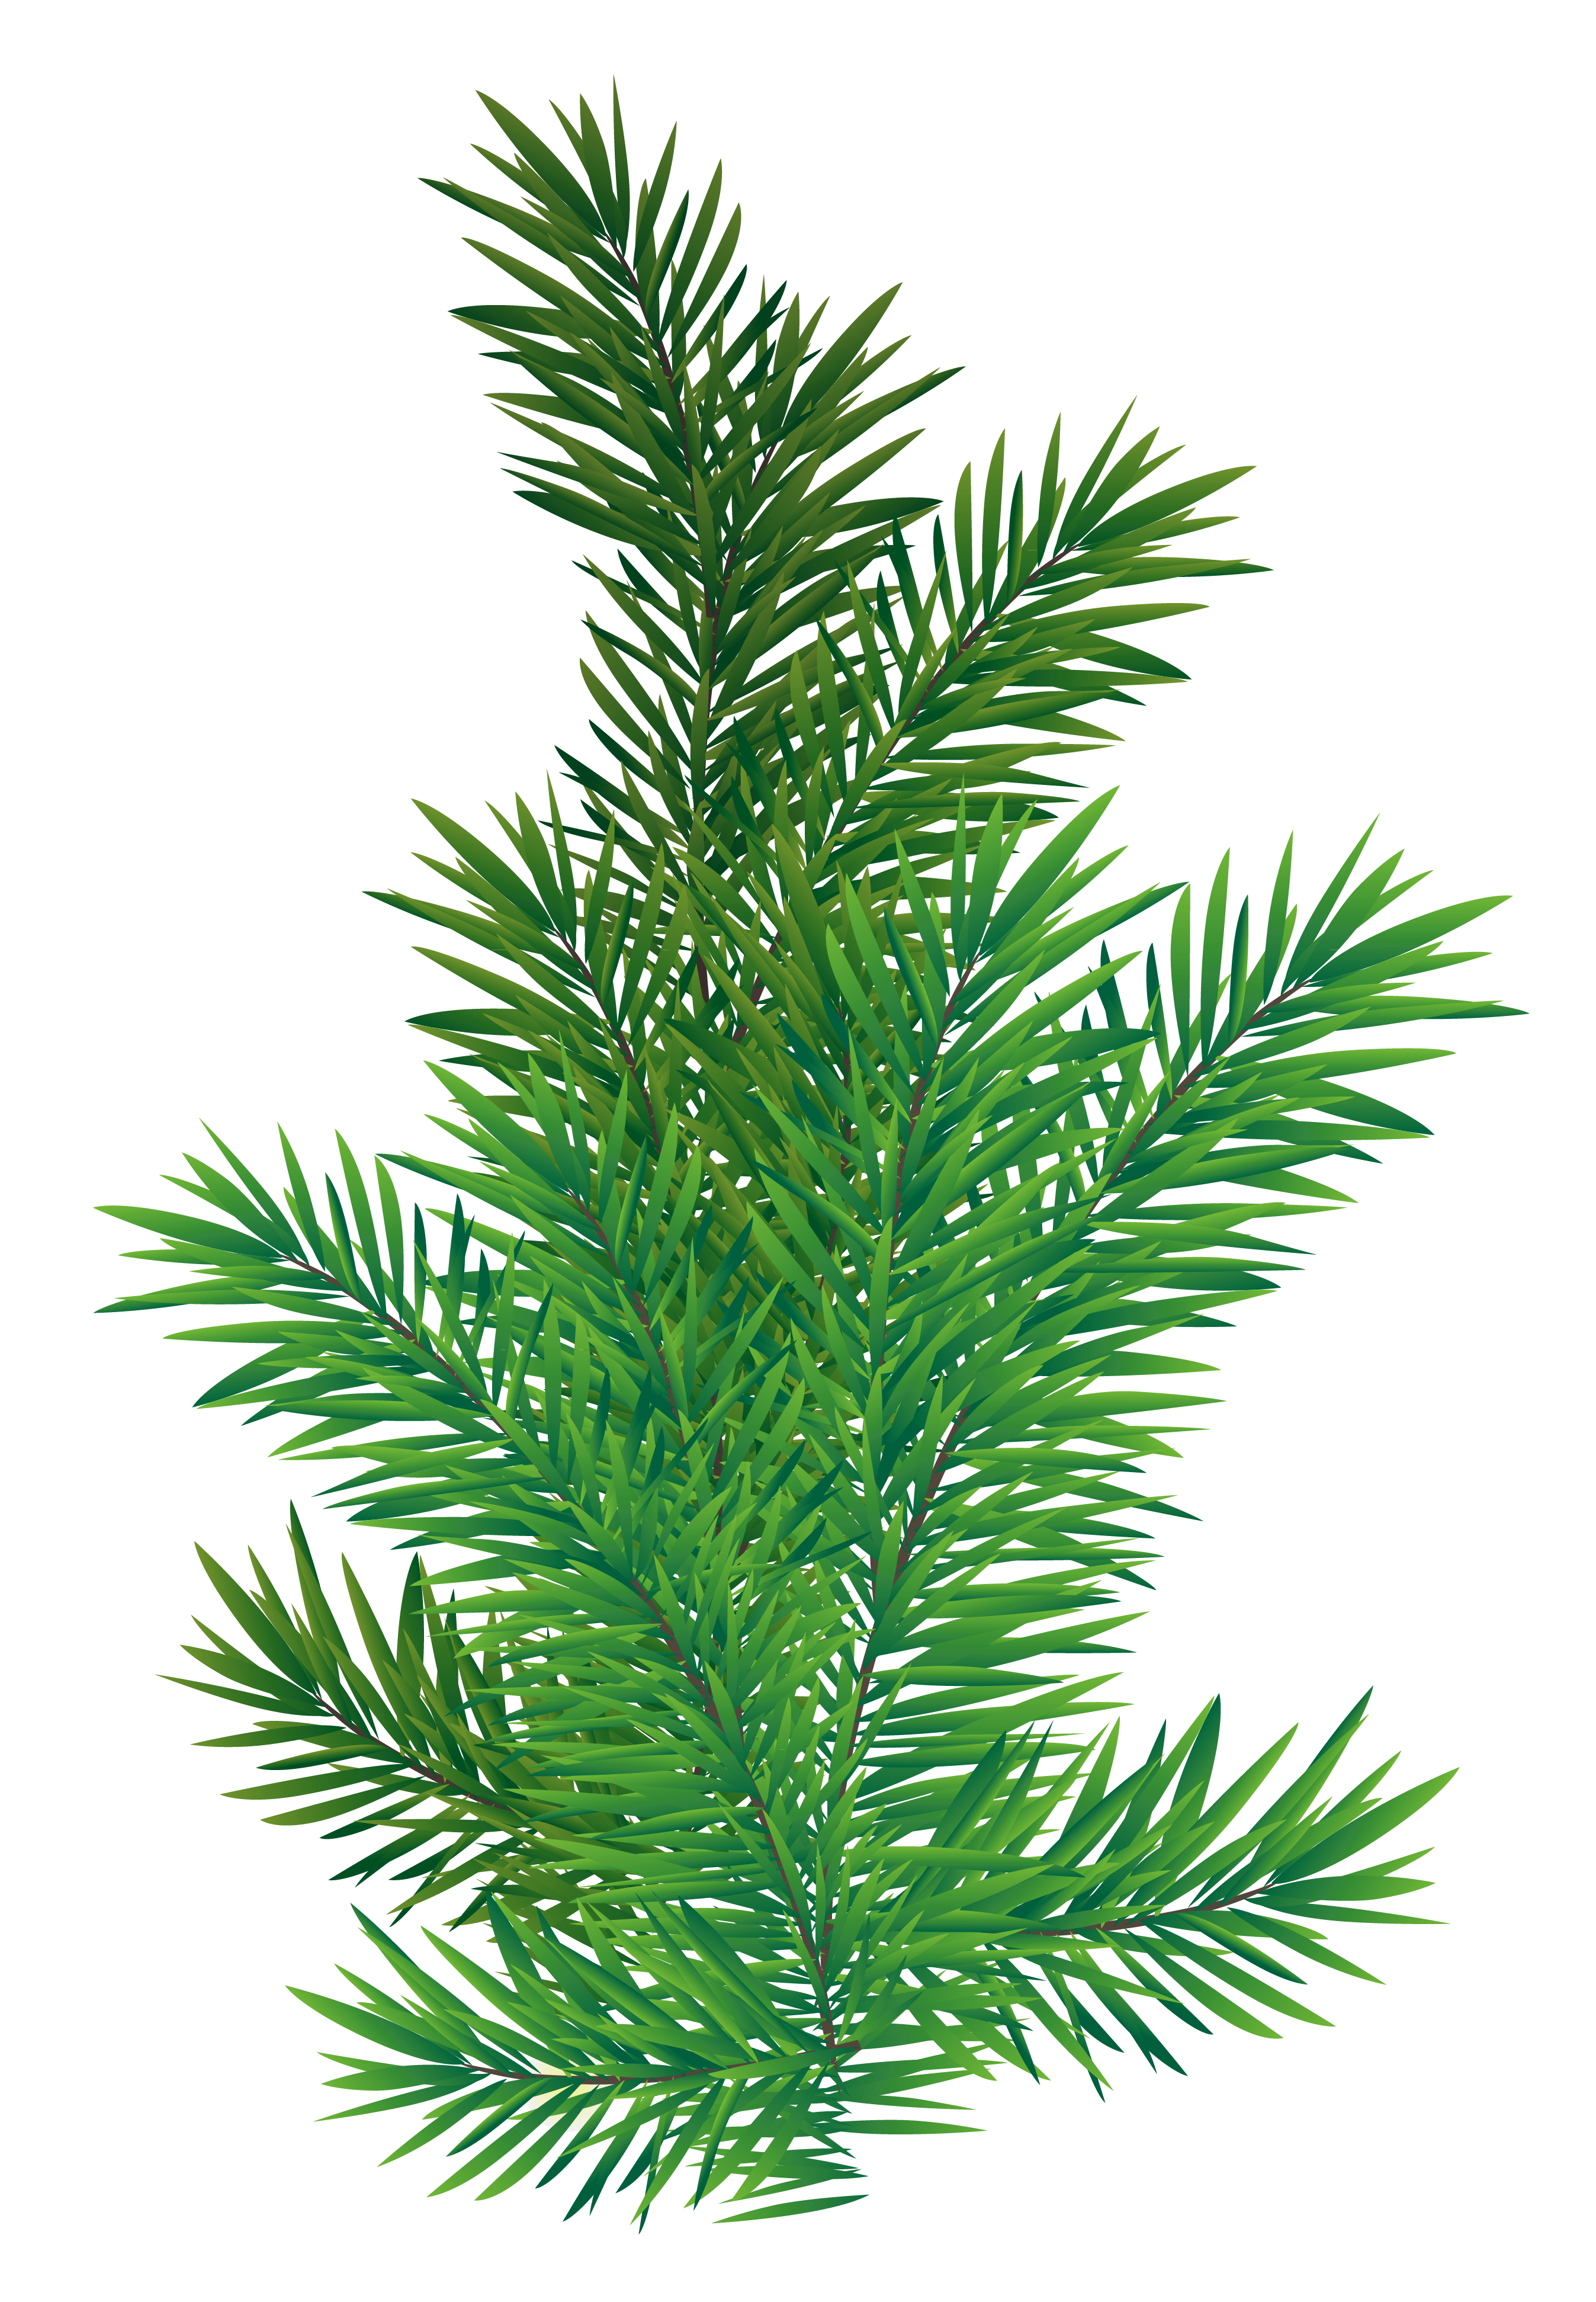 Pine tree branch png. Picture gallery yopriceville high